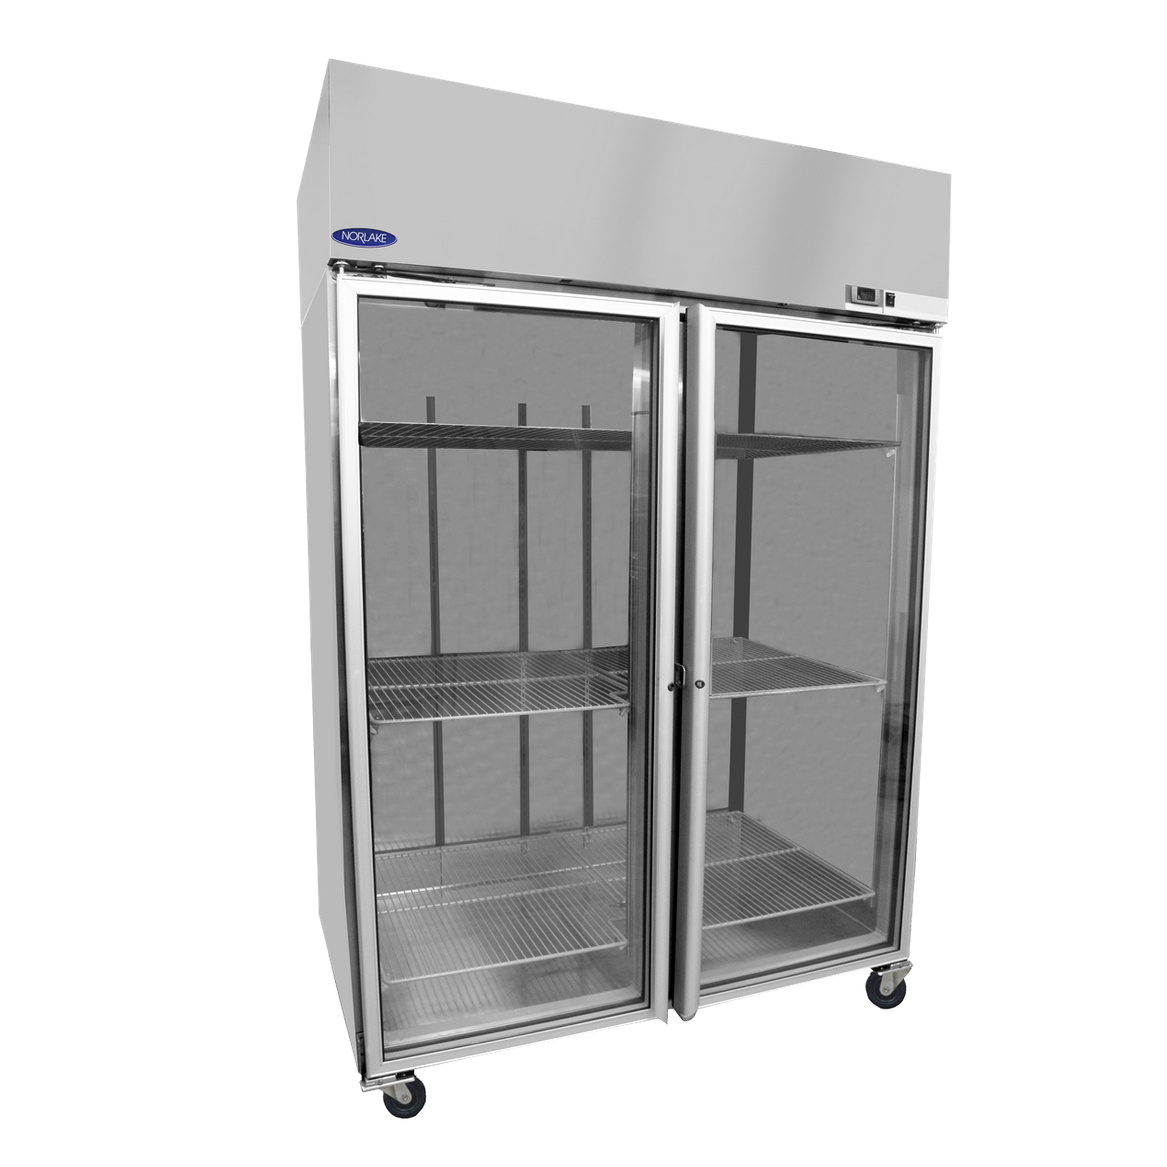 Nor-Lake NR524SSG/0R refrigerator, reach-in